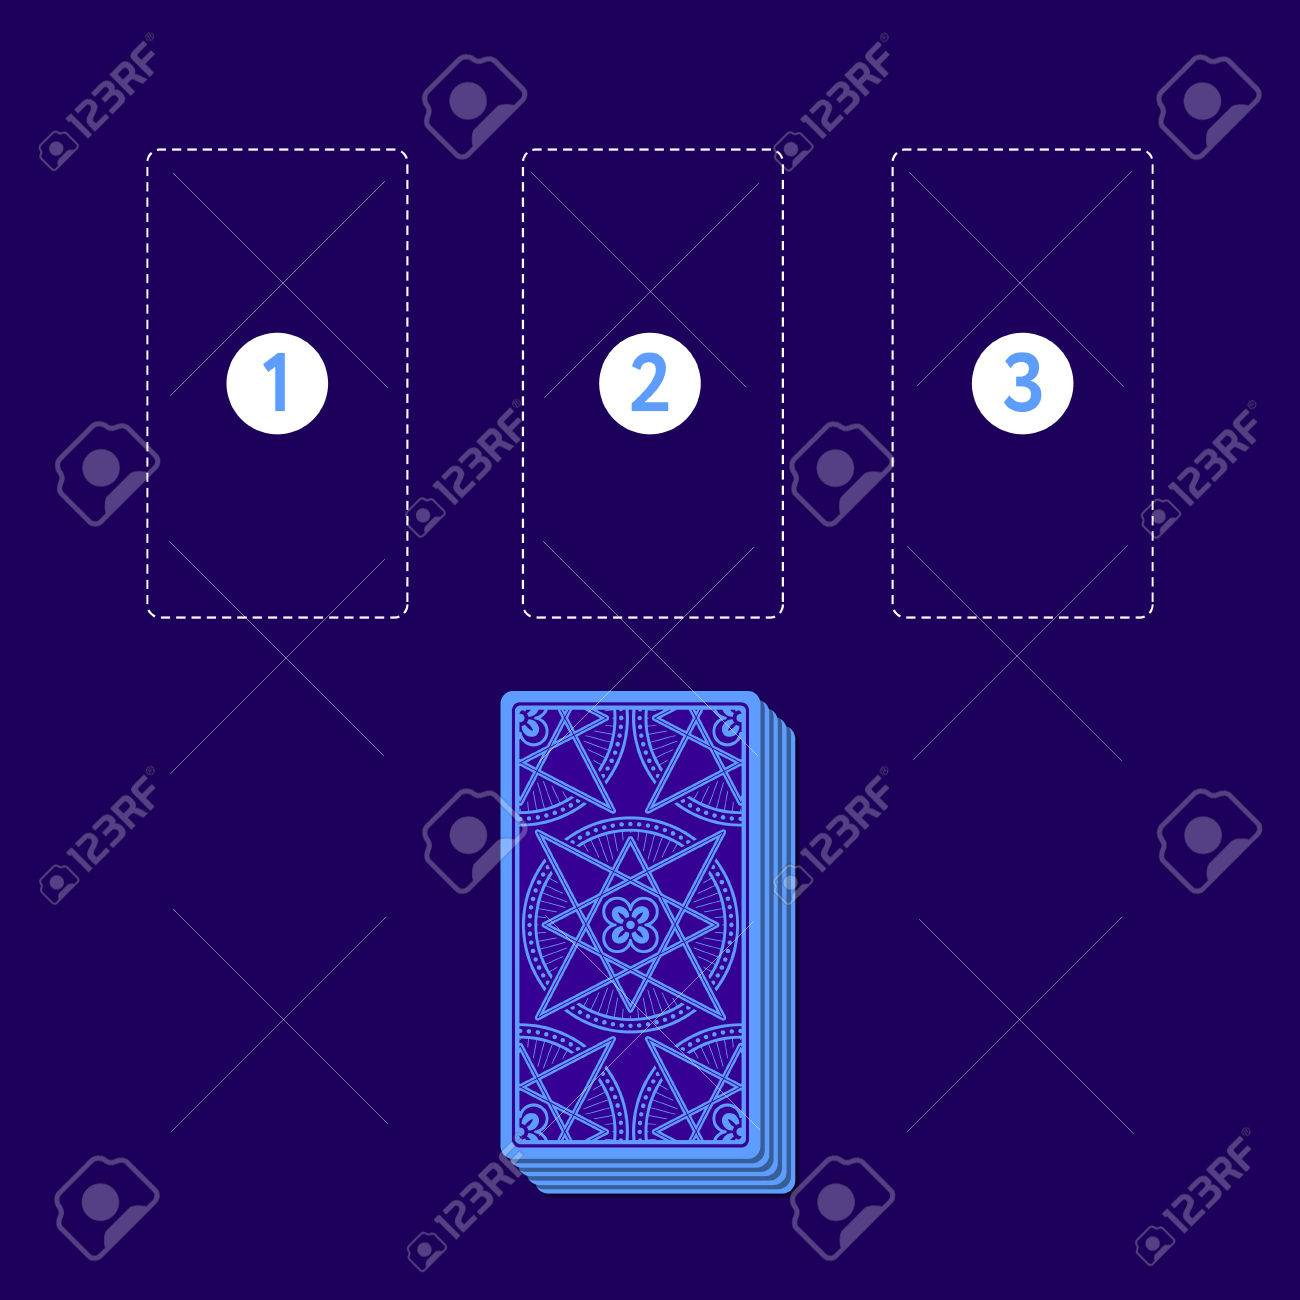 Template For Three Tarot Card Spread With Deck Reverse Side - Tarot card template